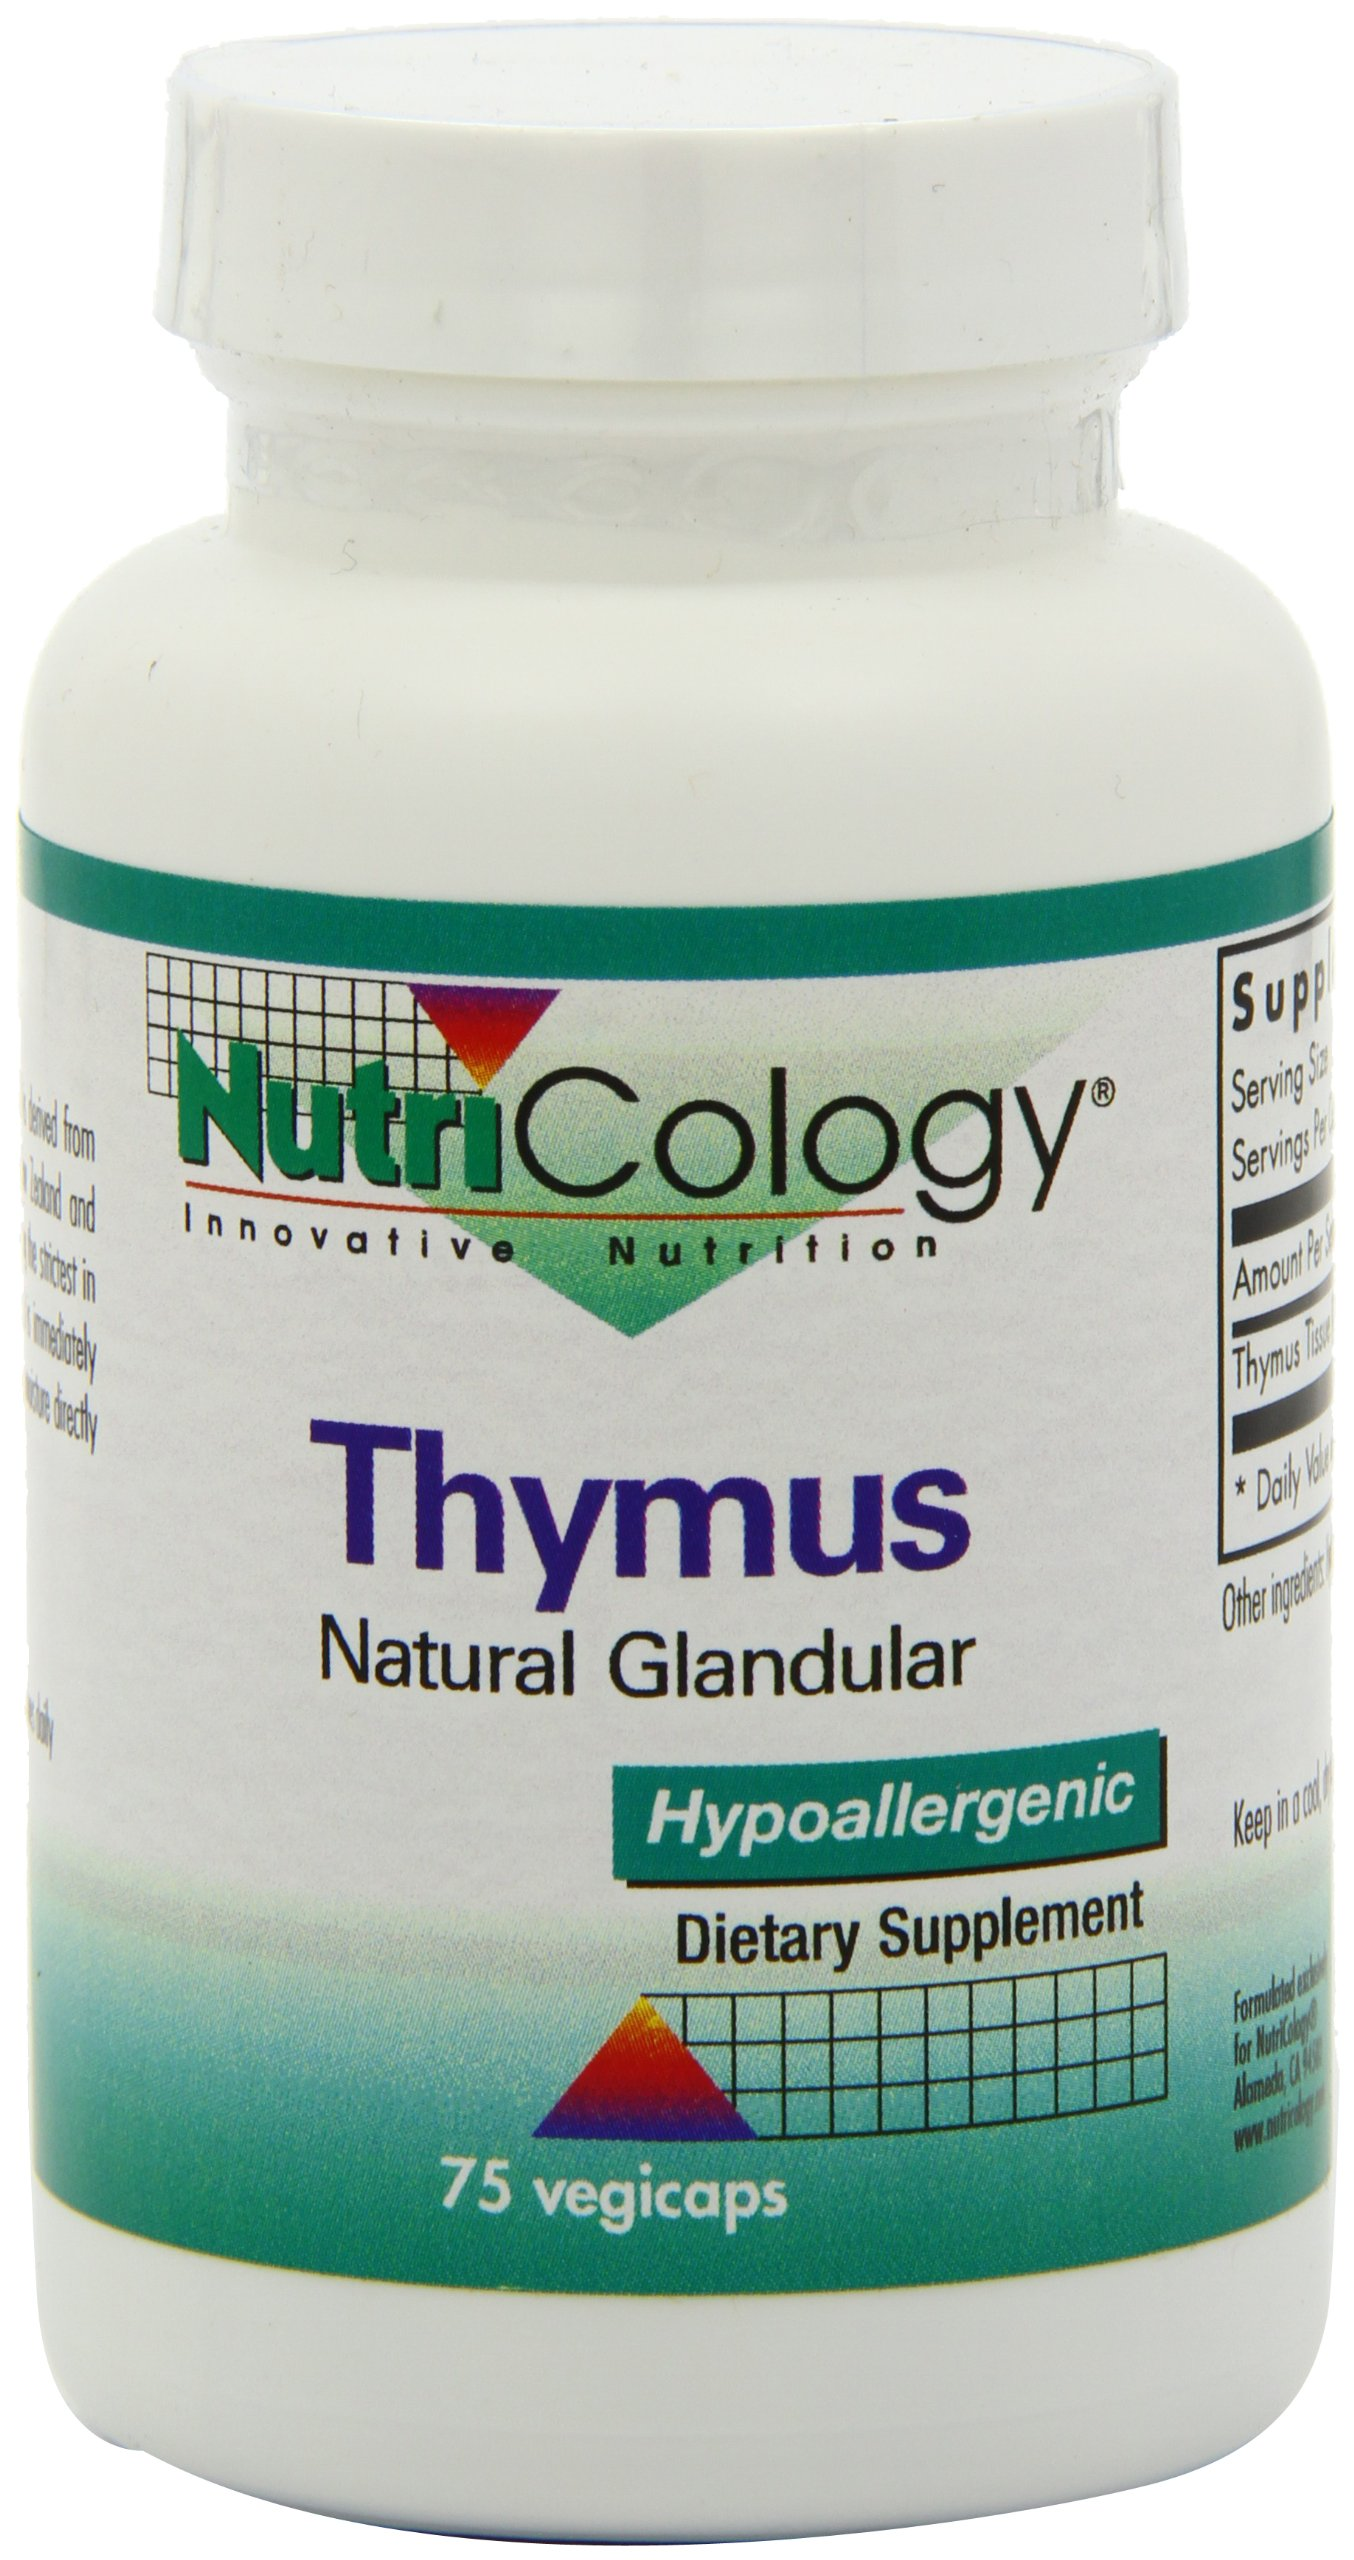 Nutricology Thymus, Vegicaps, 75-Count by Nutricology